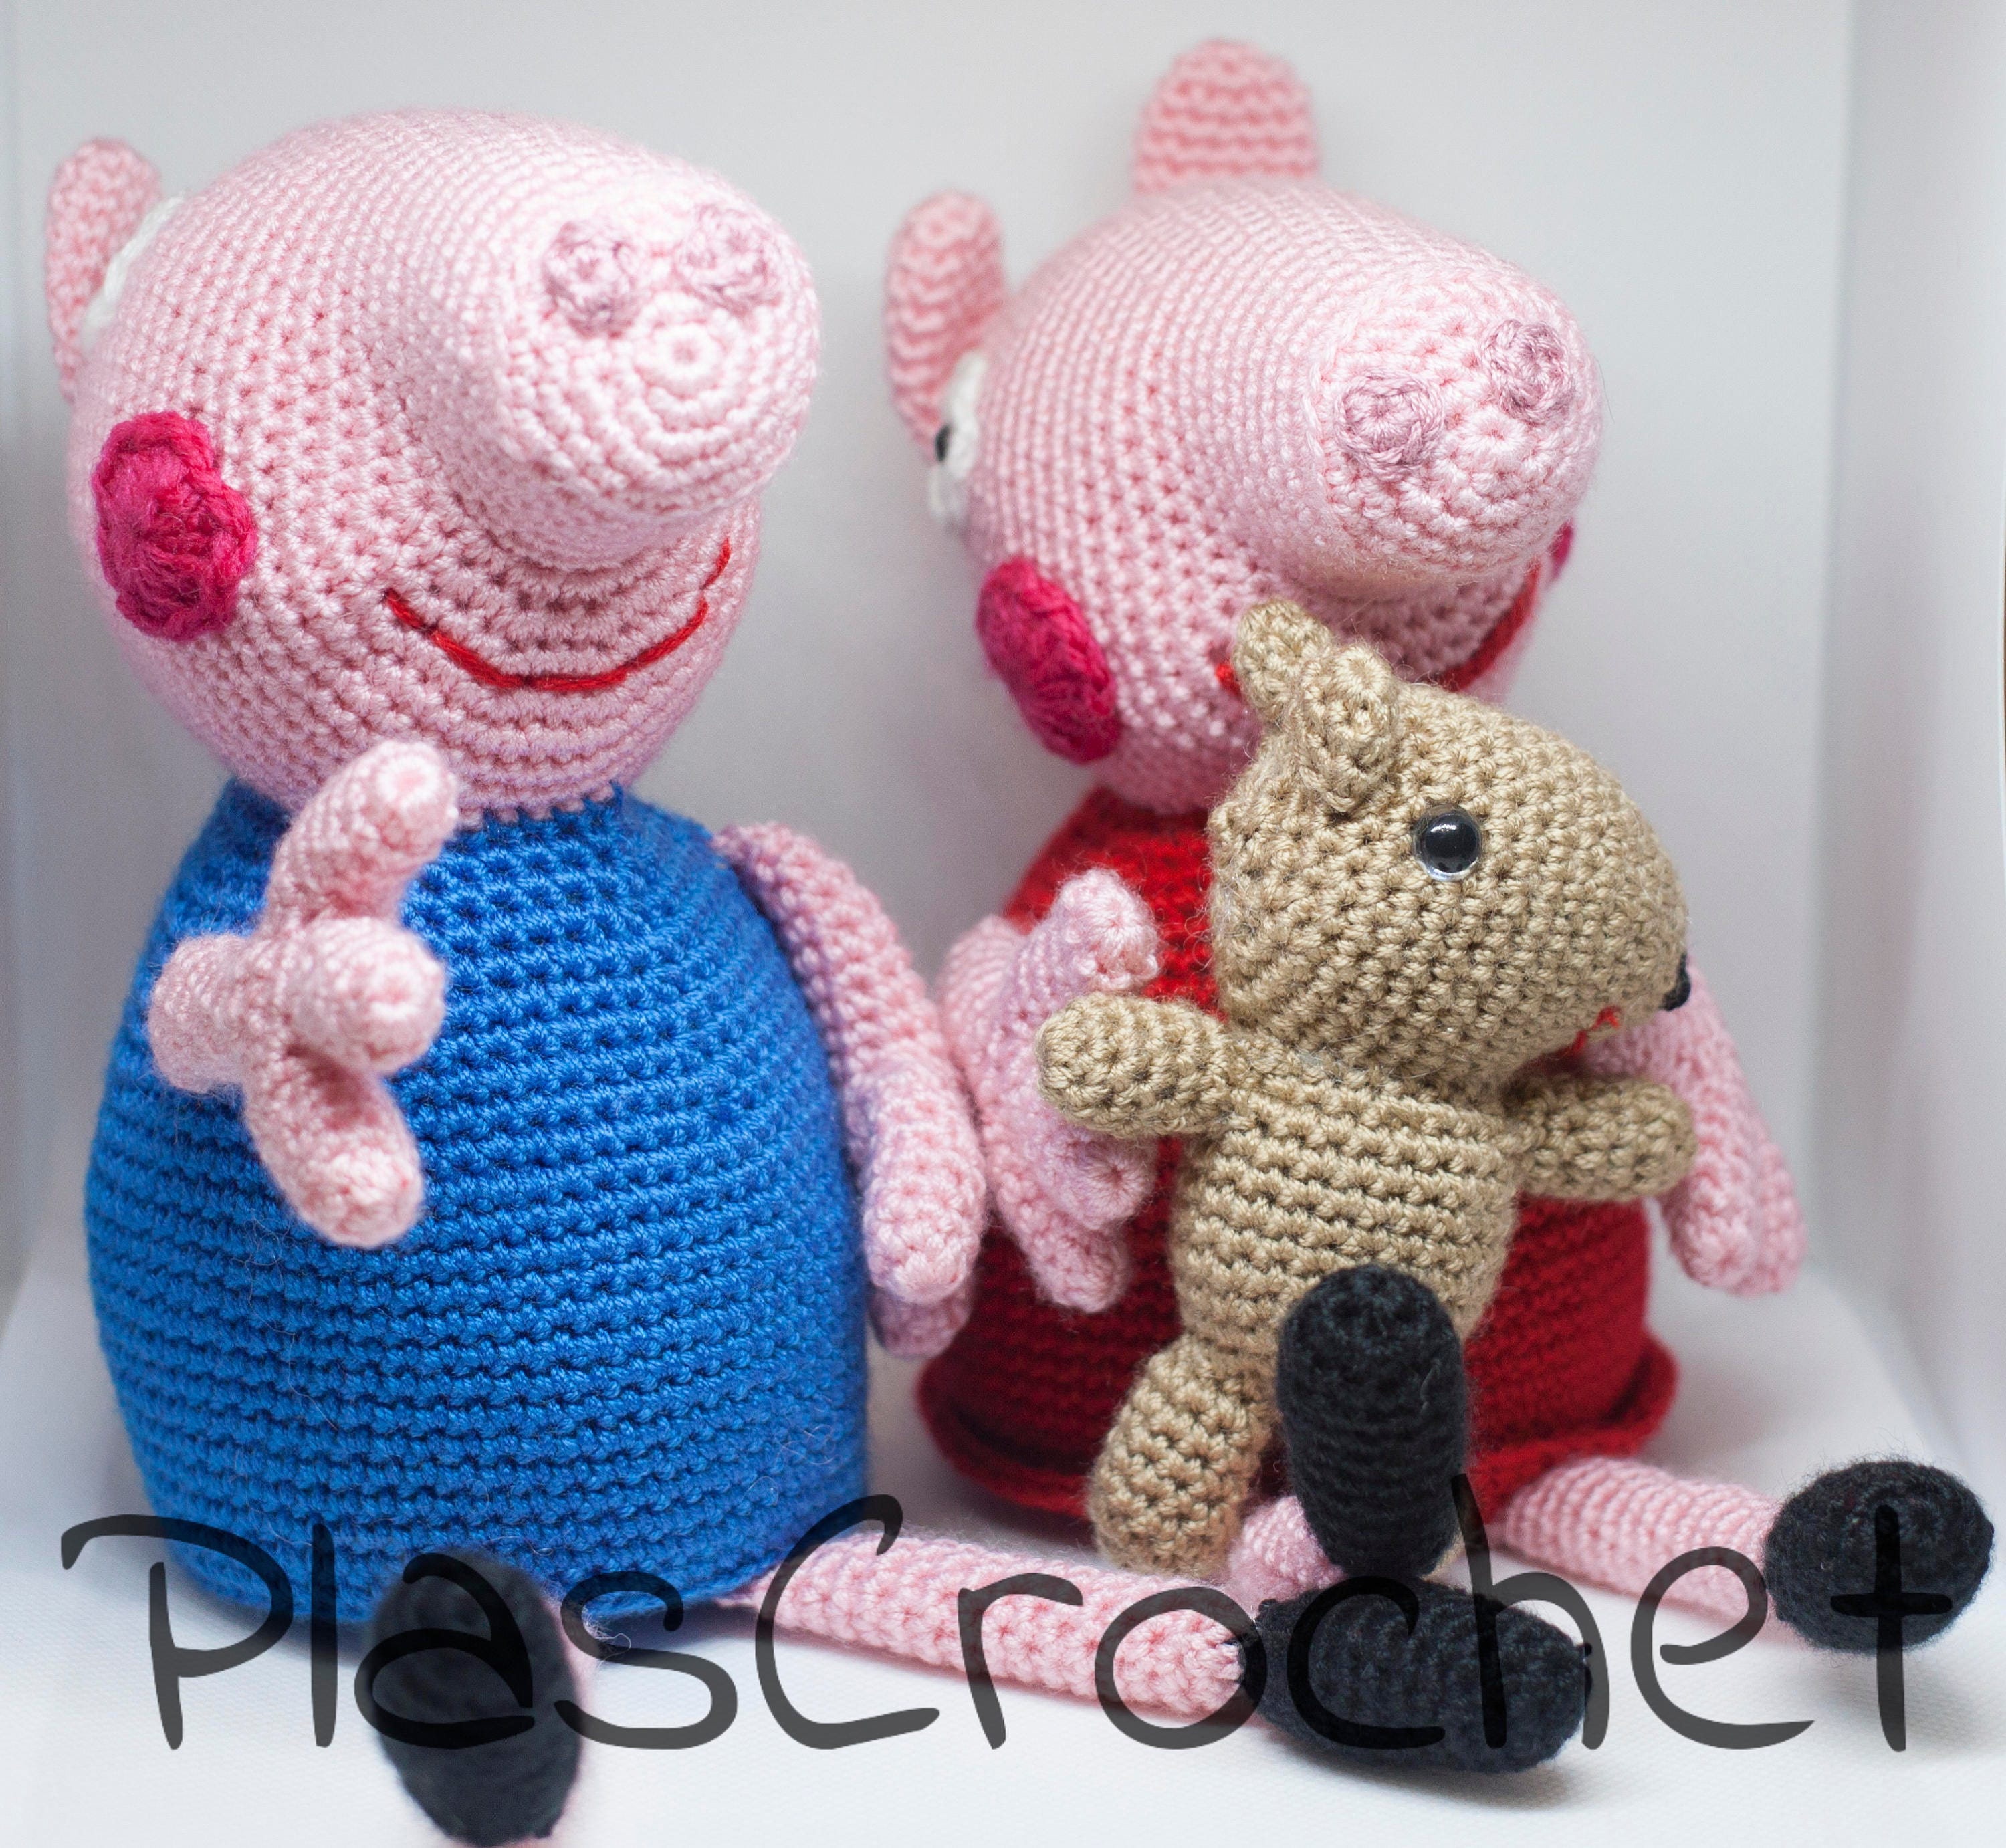 Pig Peppa Pig and George Pig amigurumi with crochet technique. Plush ...